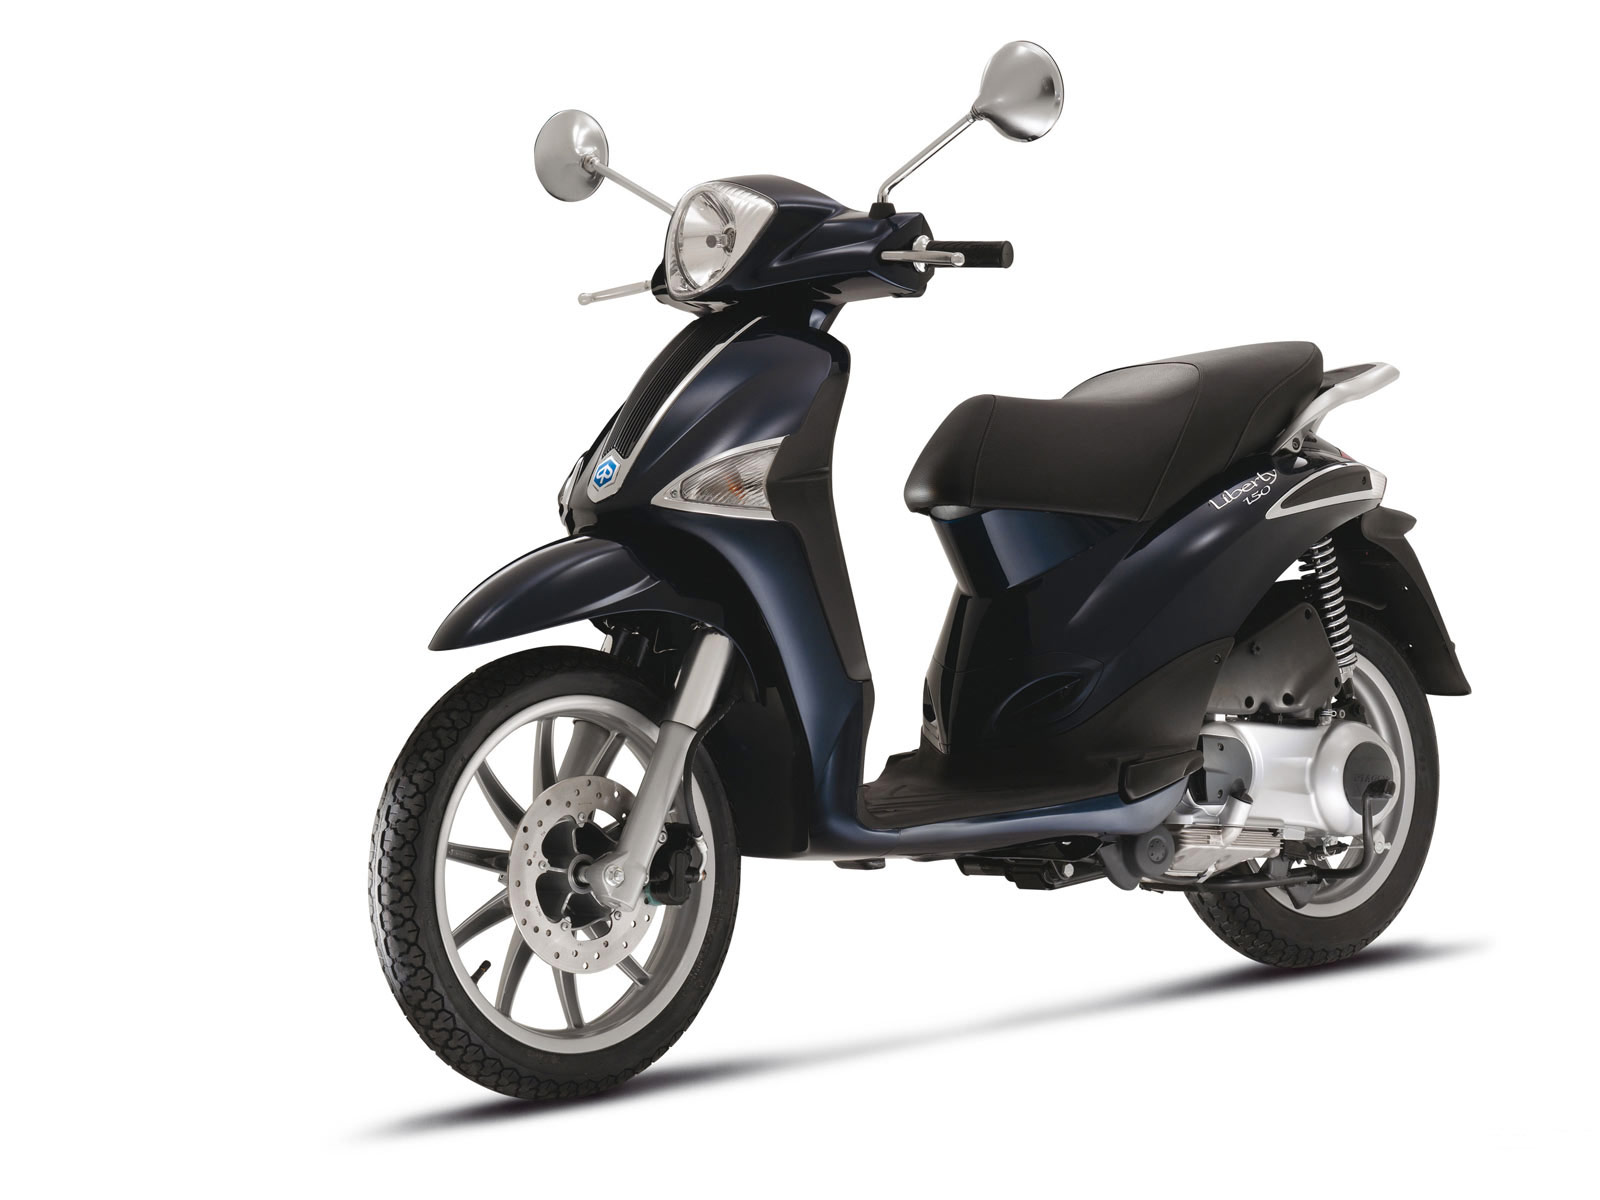 2009 piaggio liberty 150 scooter pictures accident lawyers info. Black Bedroom Furniture Sets. Home Design Ideas